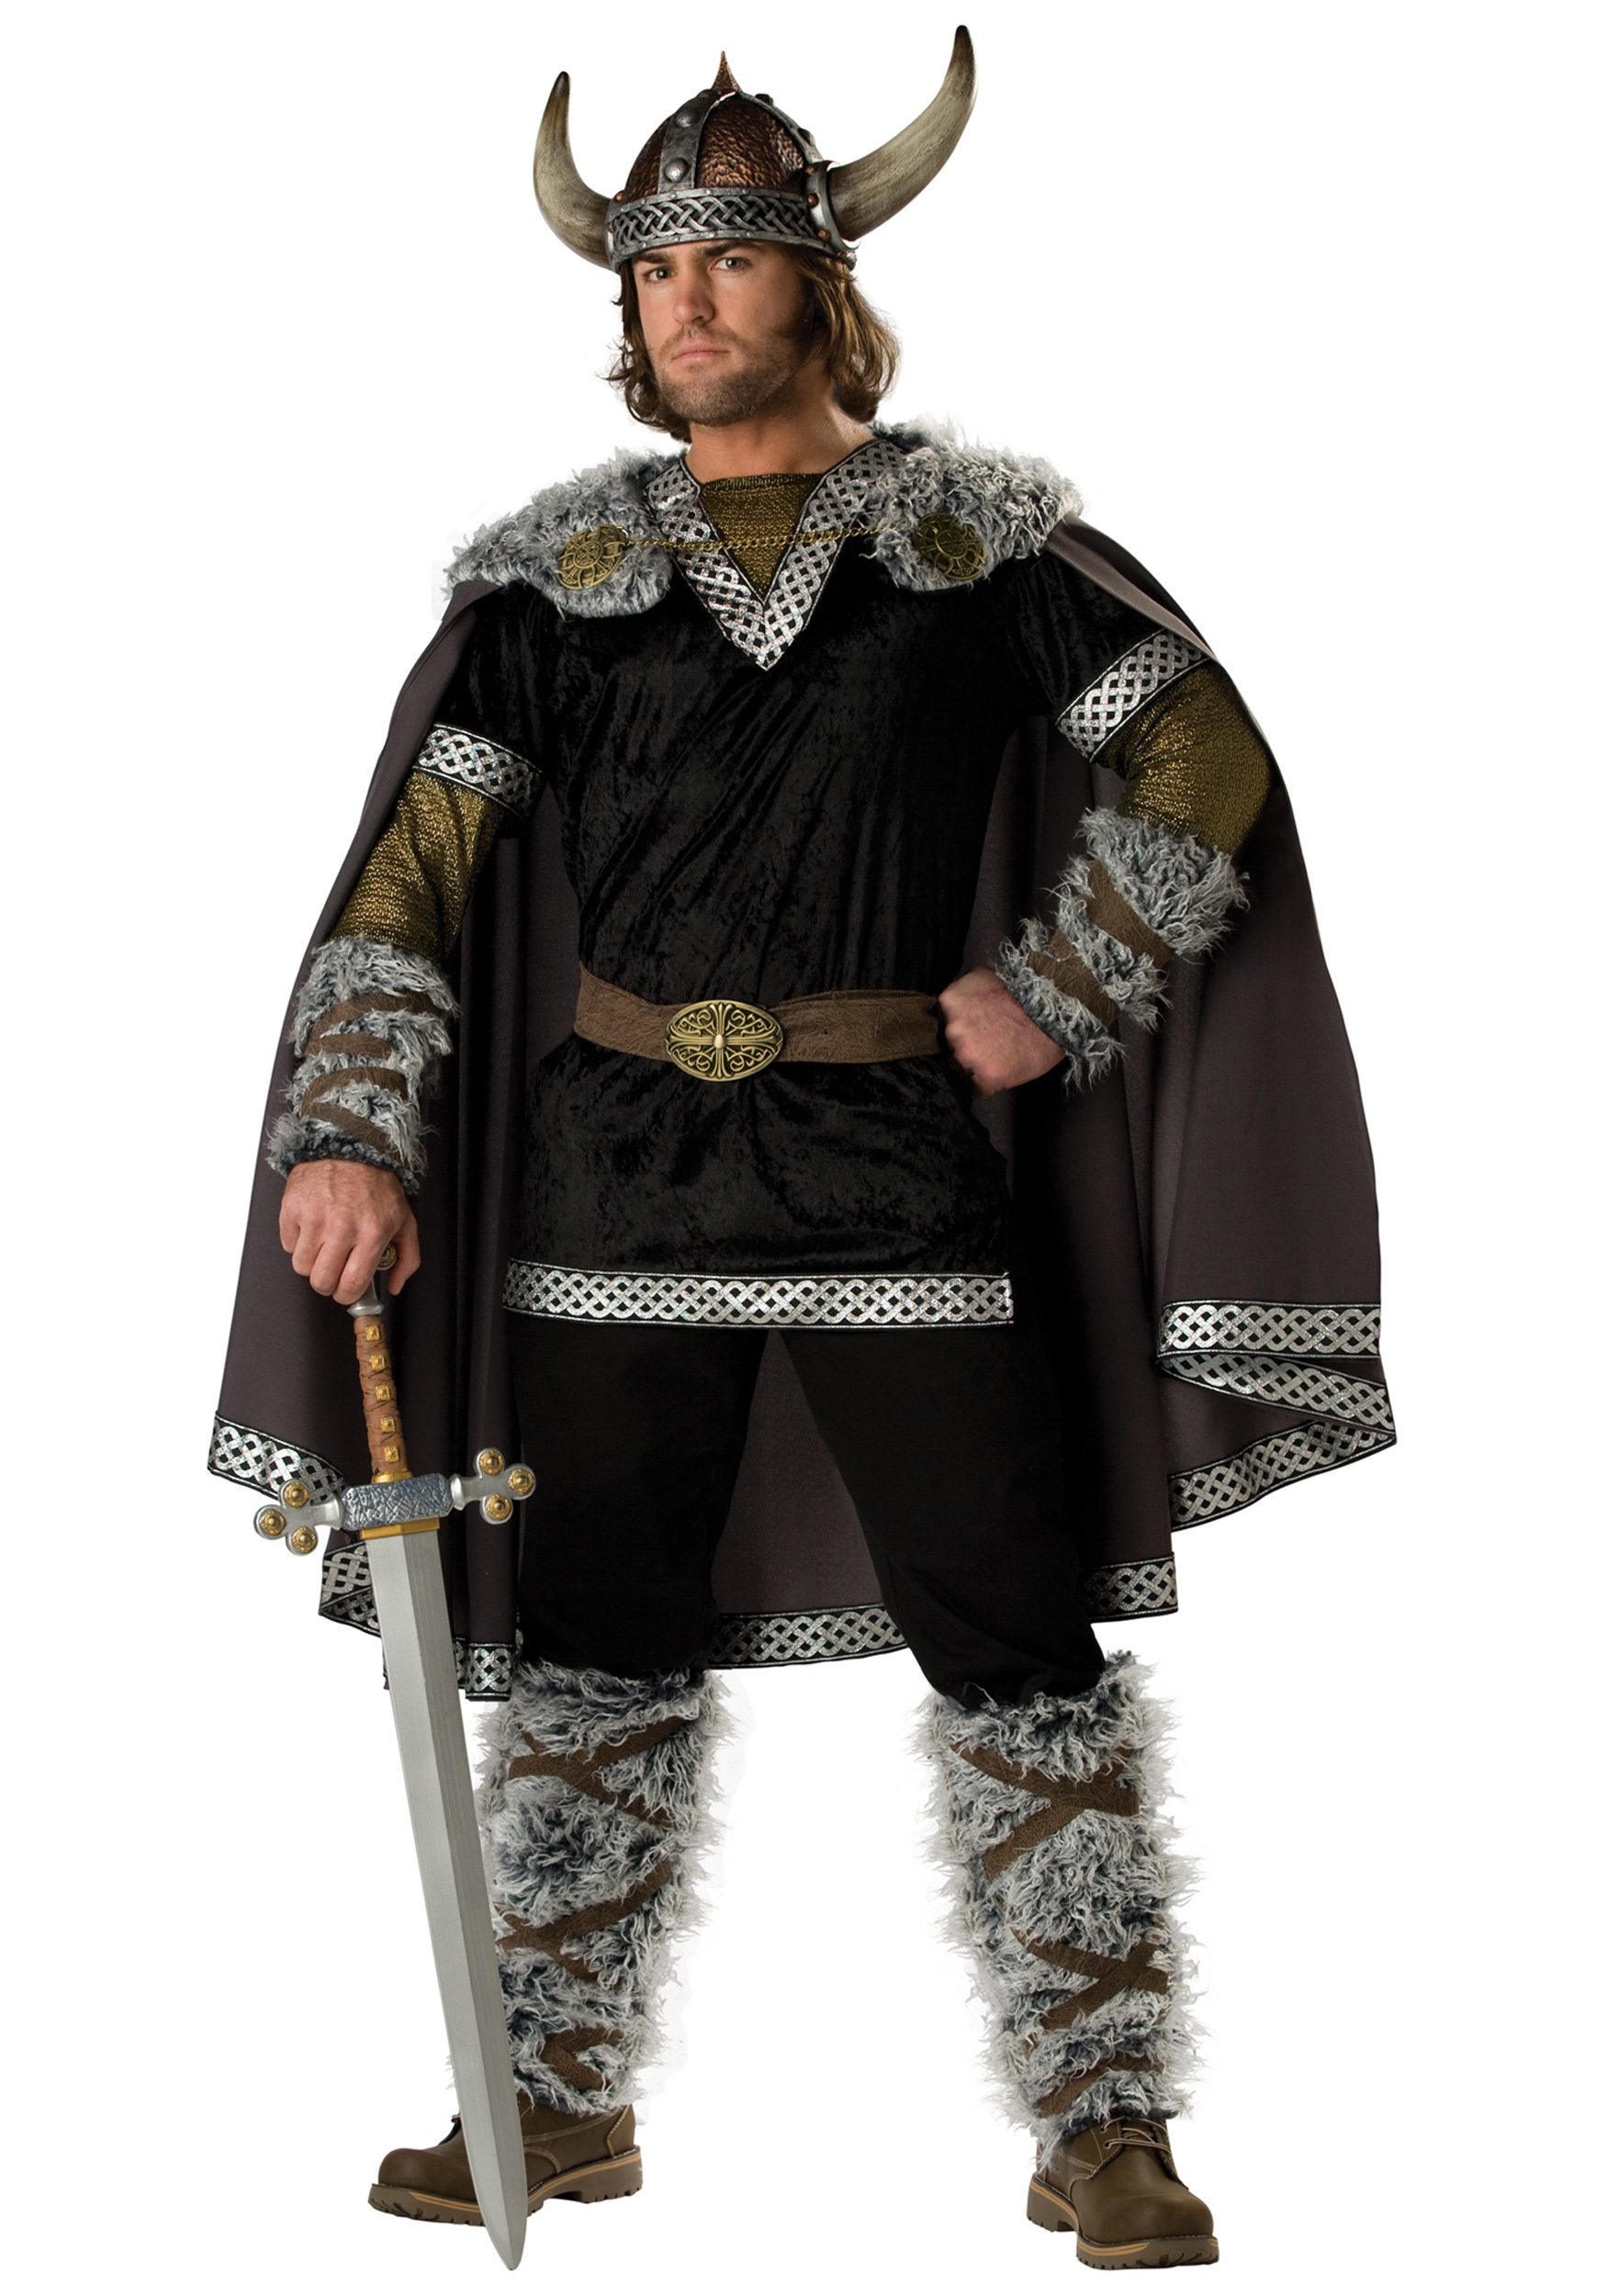 Viking Warrior Costumes & Warrior Viking Outfits HalloweenCostumes  d13a82